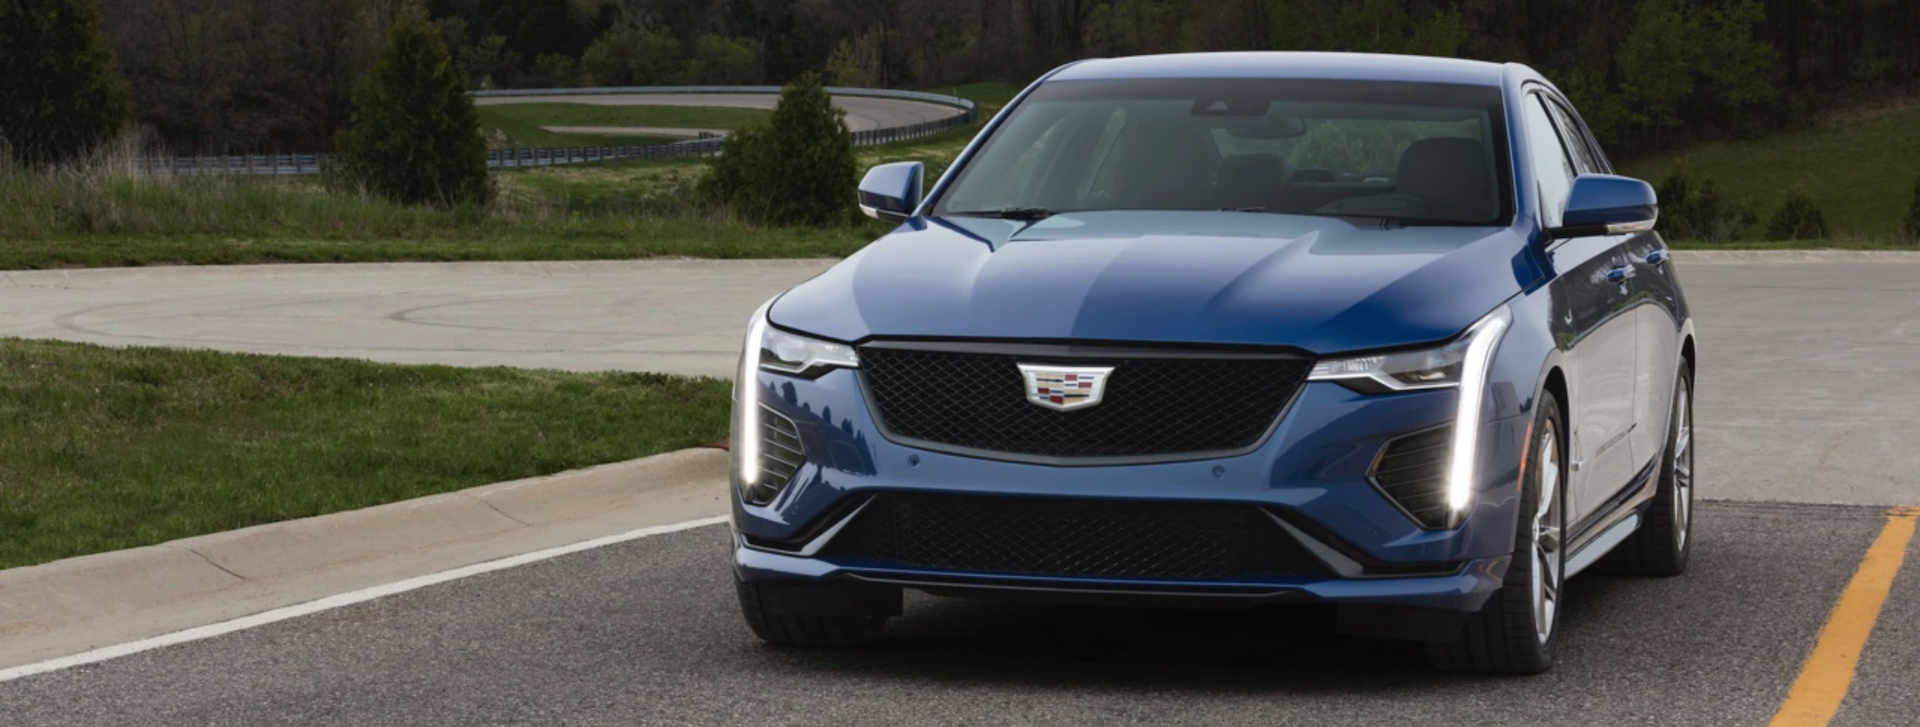 Test drive the New Cadillac CT4 in Odessa, Texas.